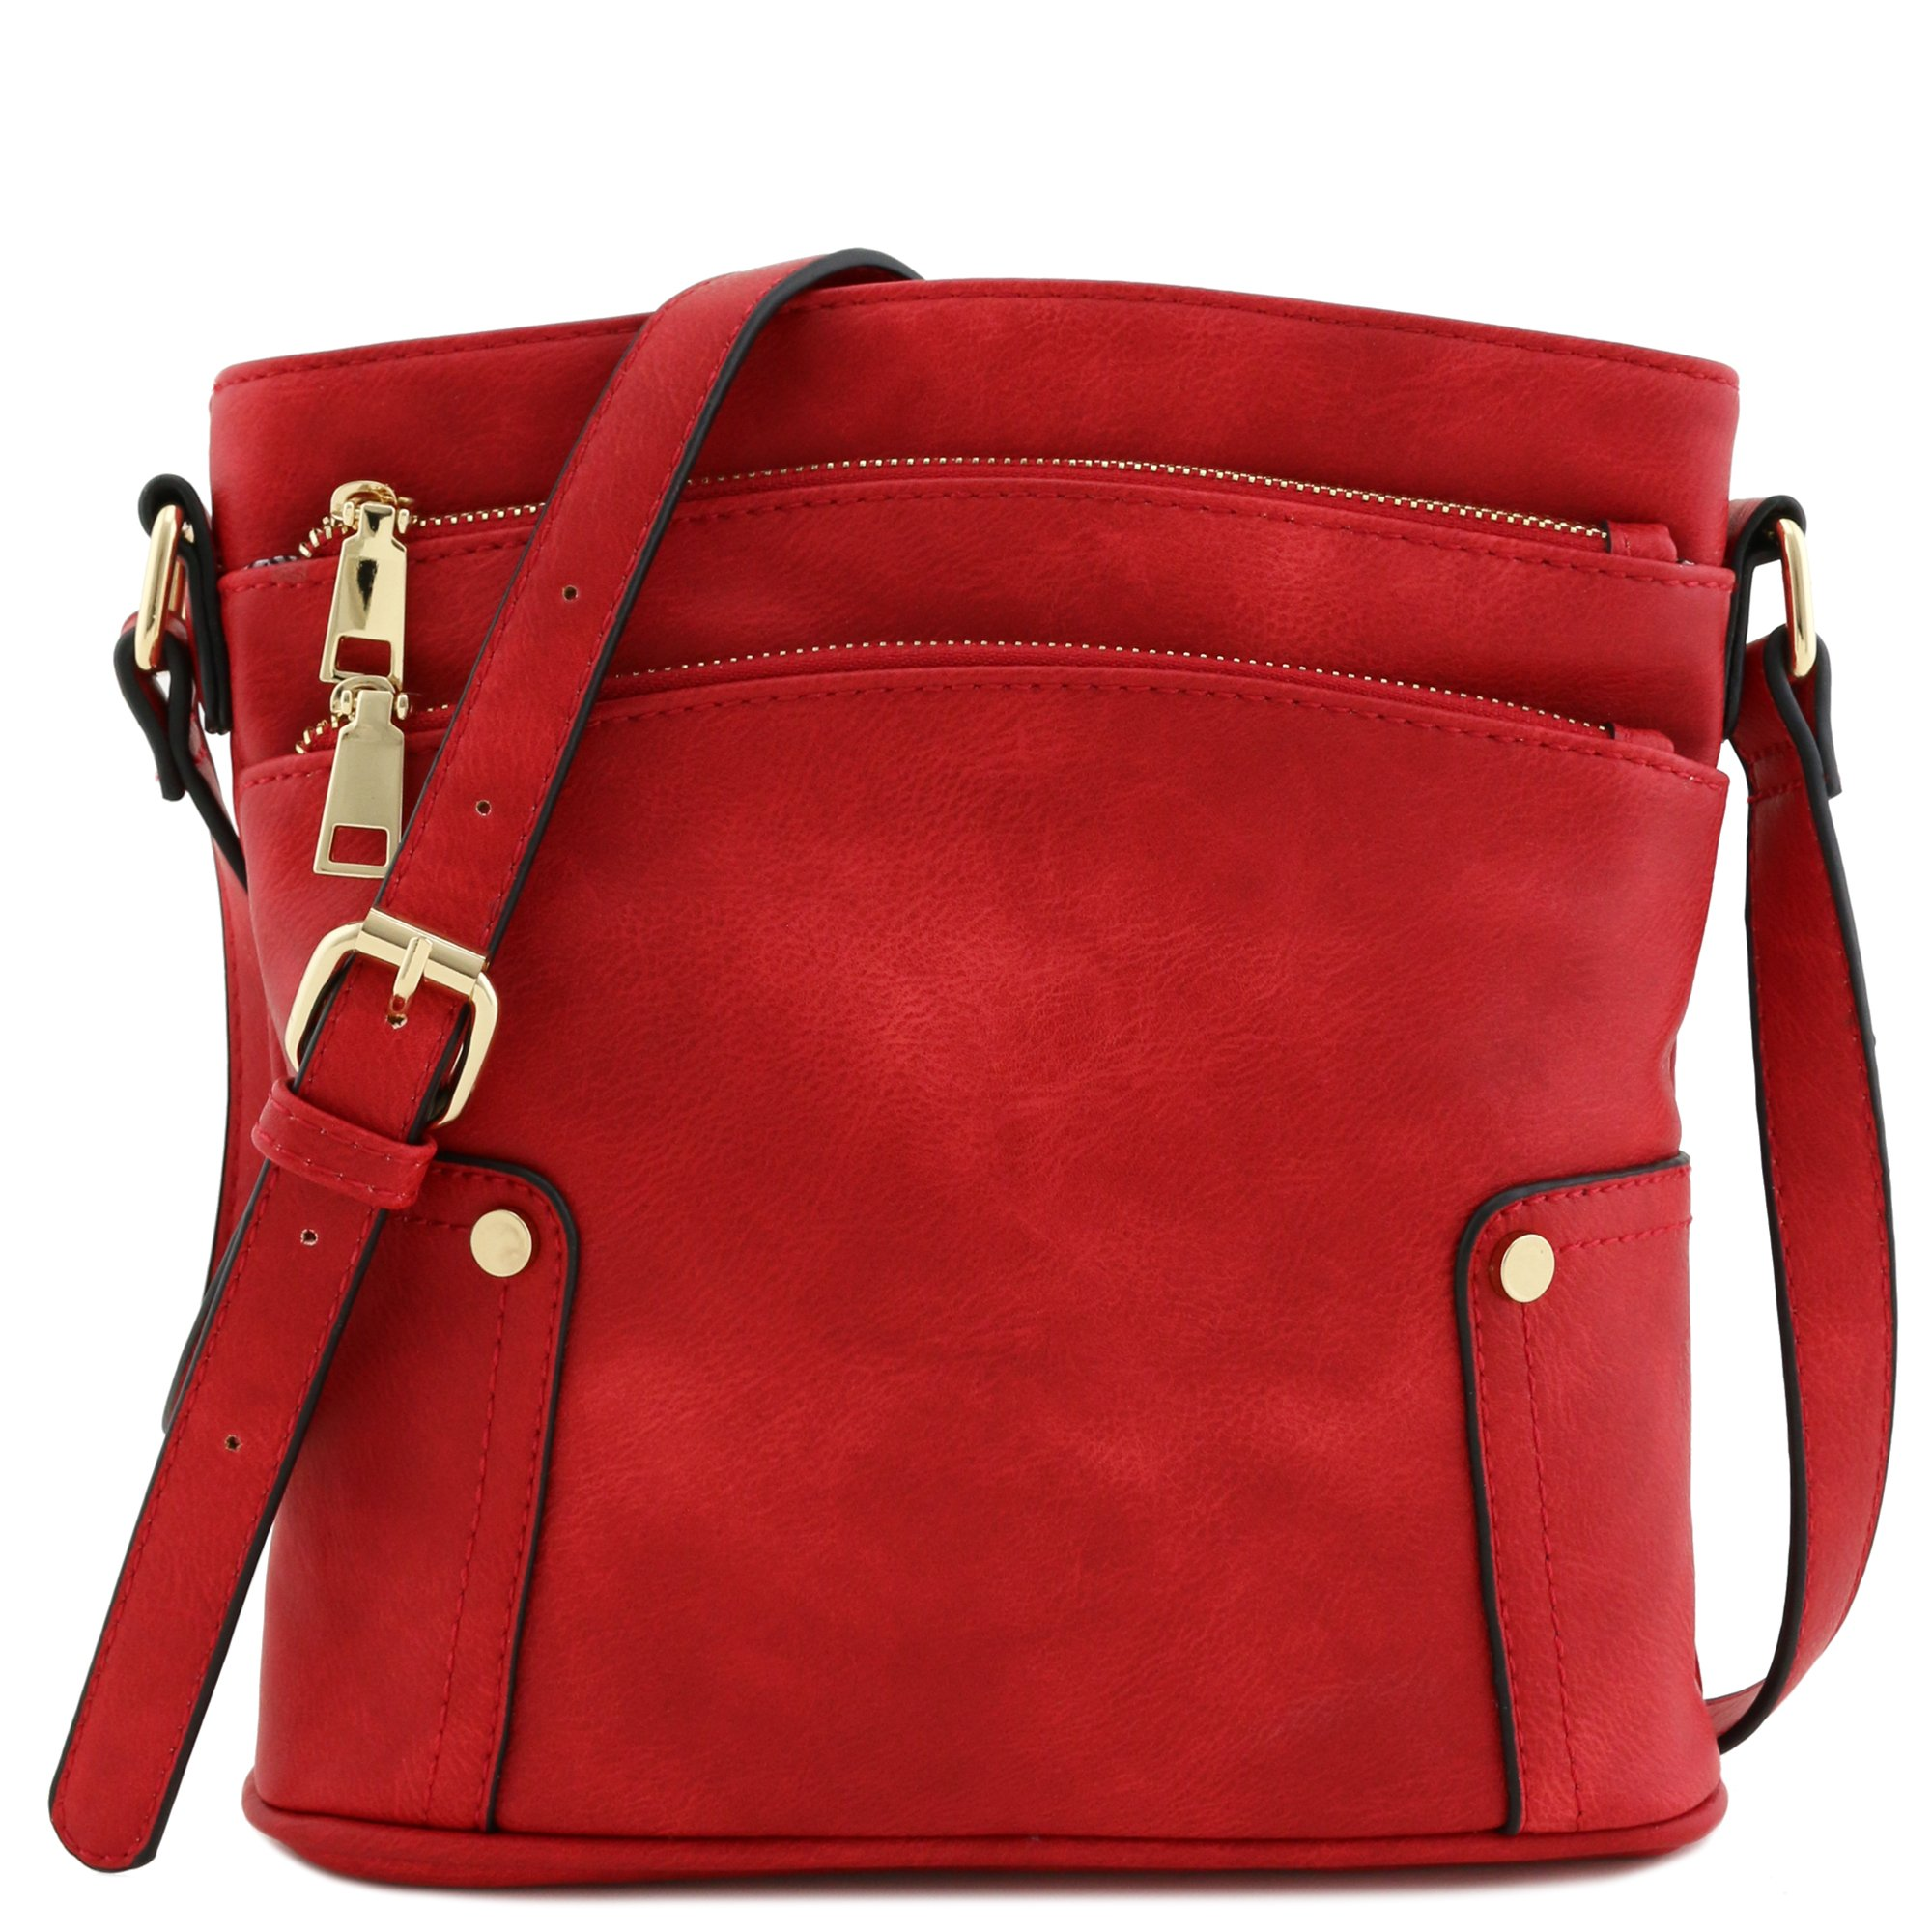 Triple Zip Pocket Medium Crossbody Bag Red